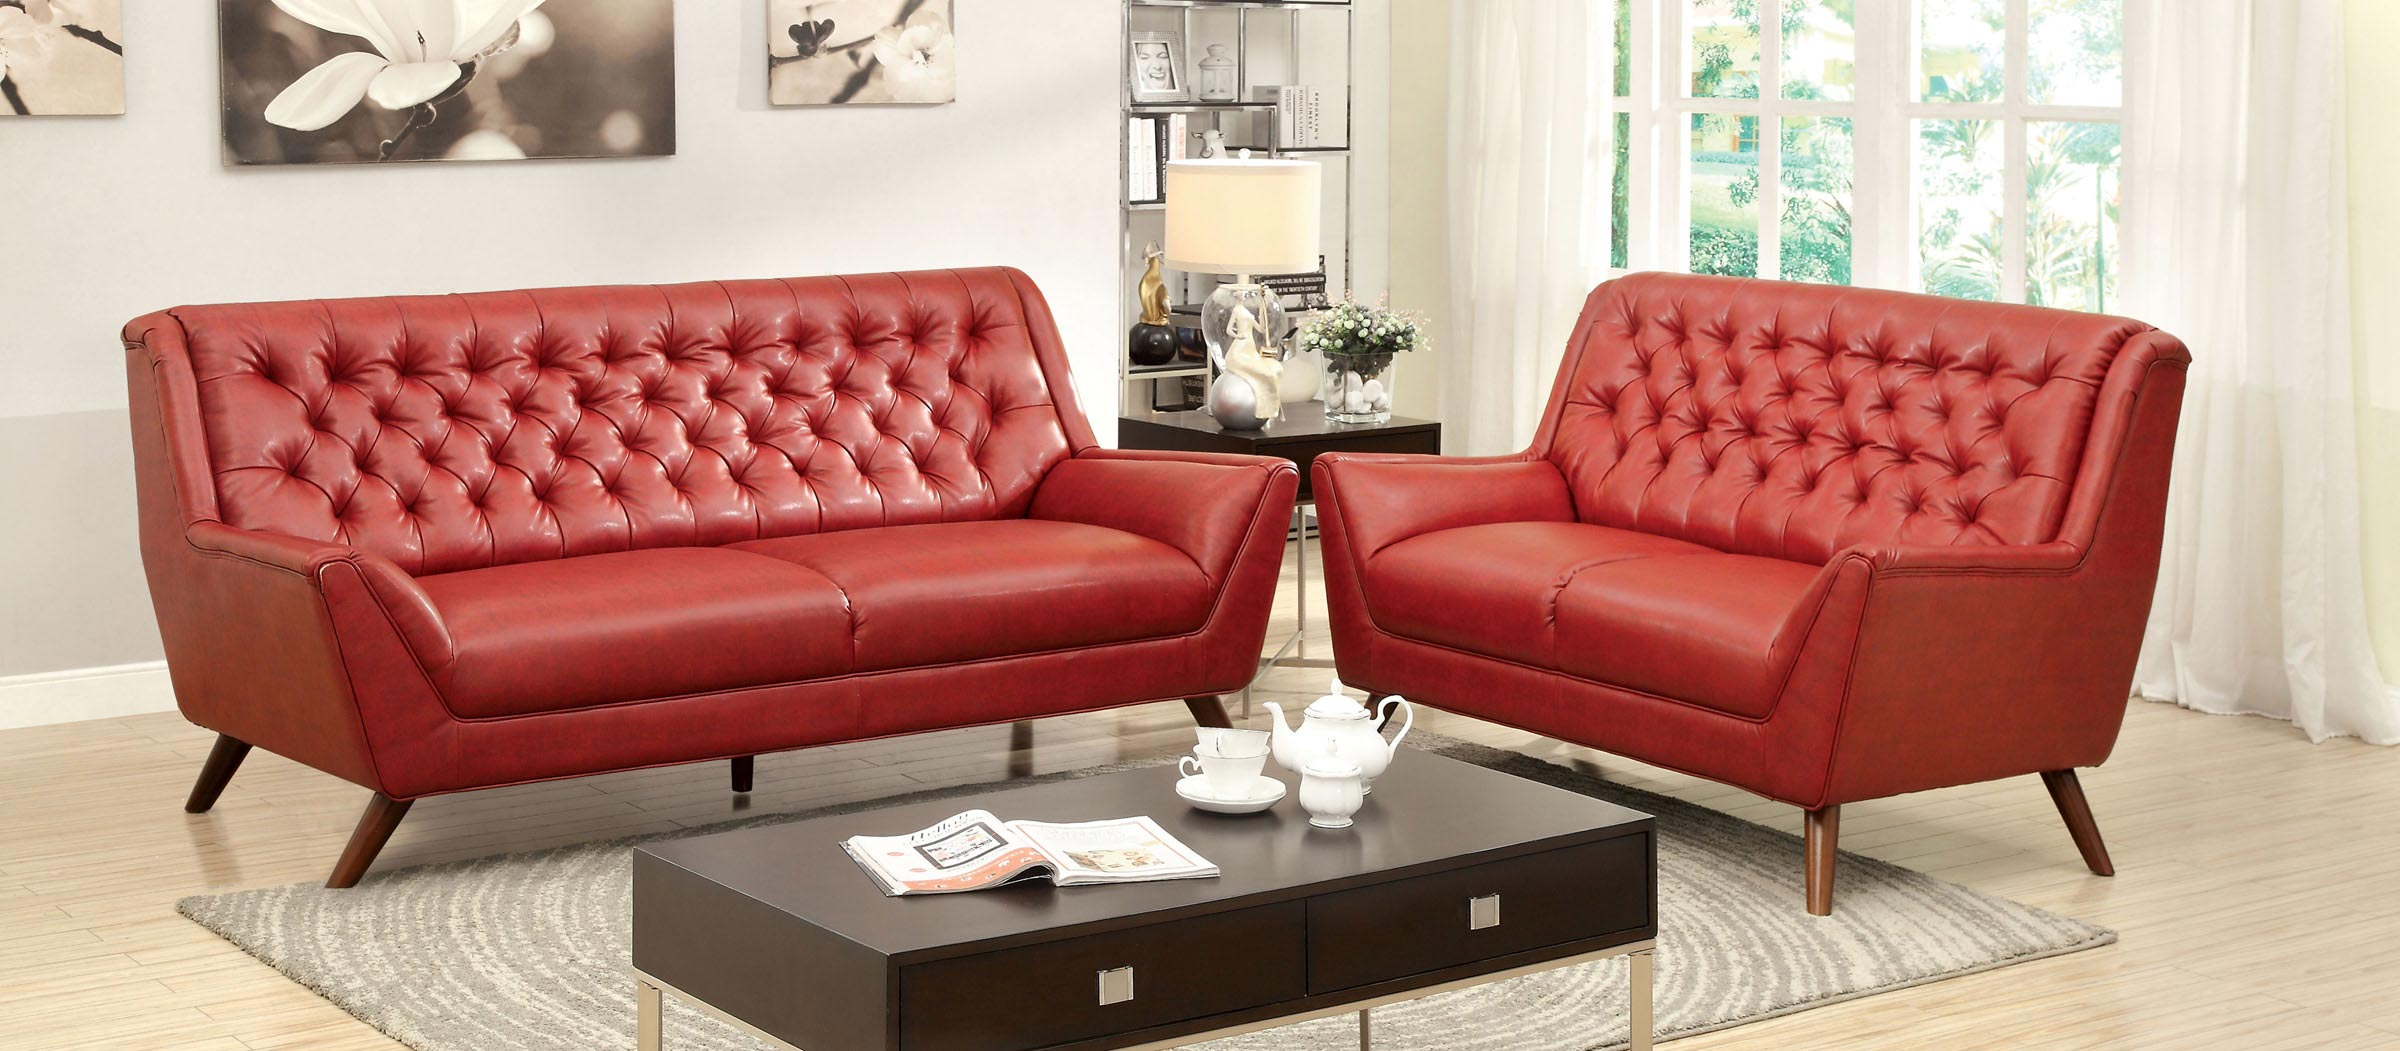 2 pcs red button tufted sofa set for Tufted couch set